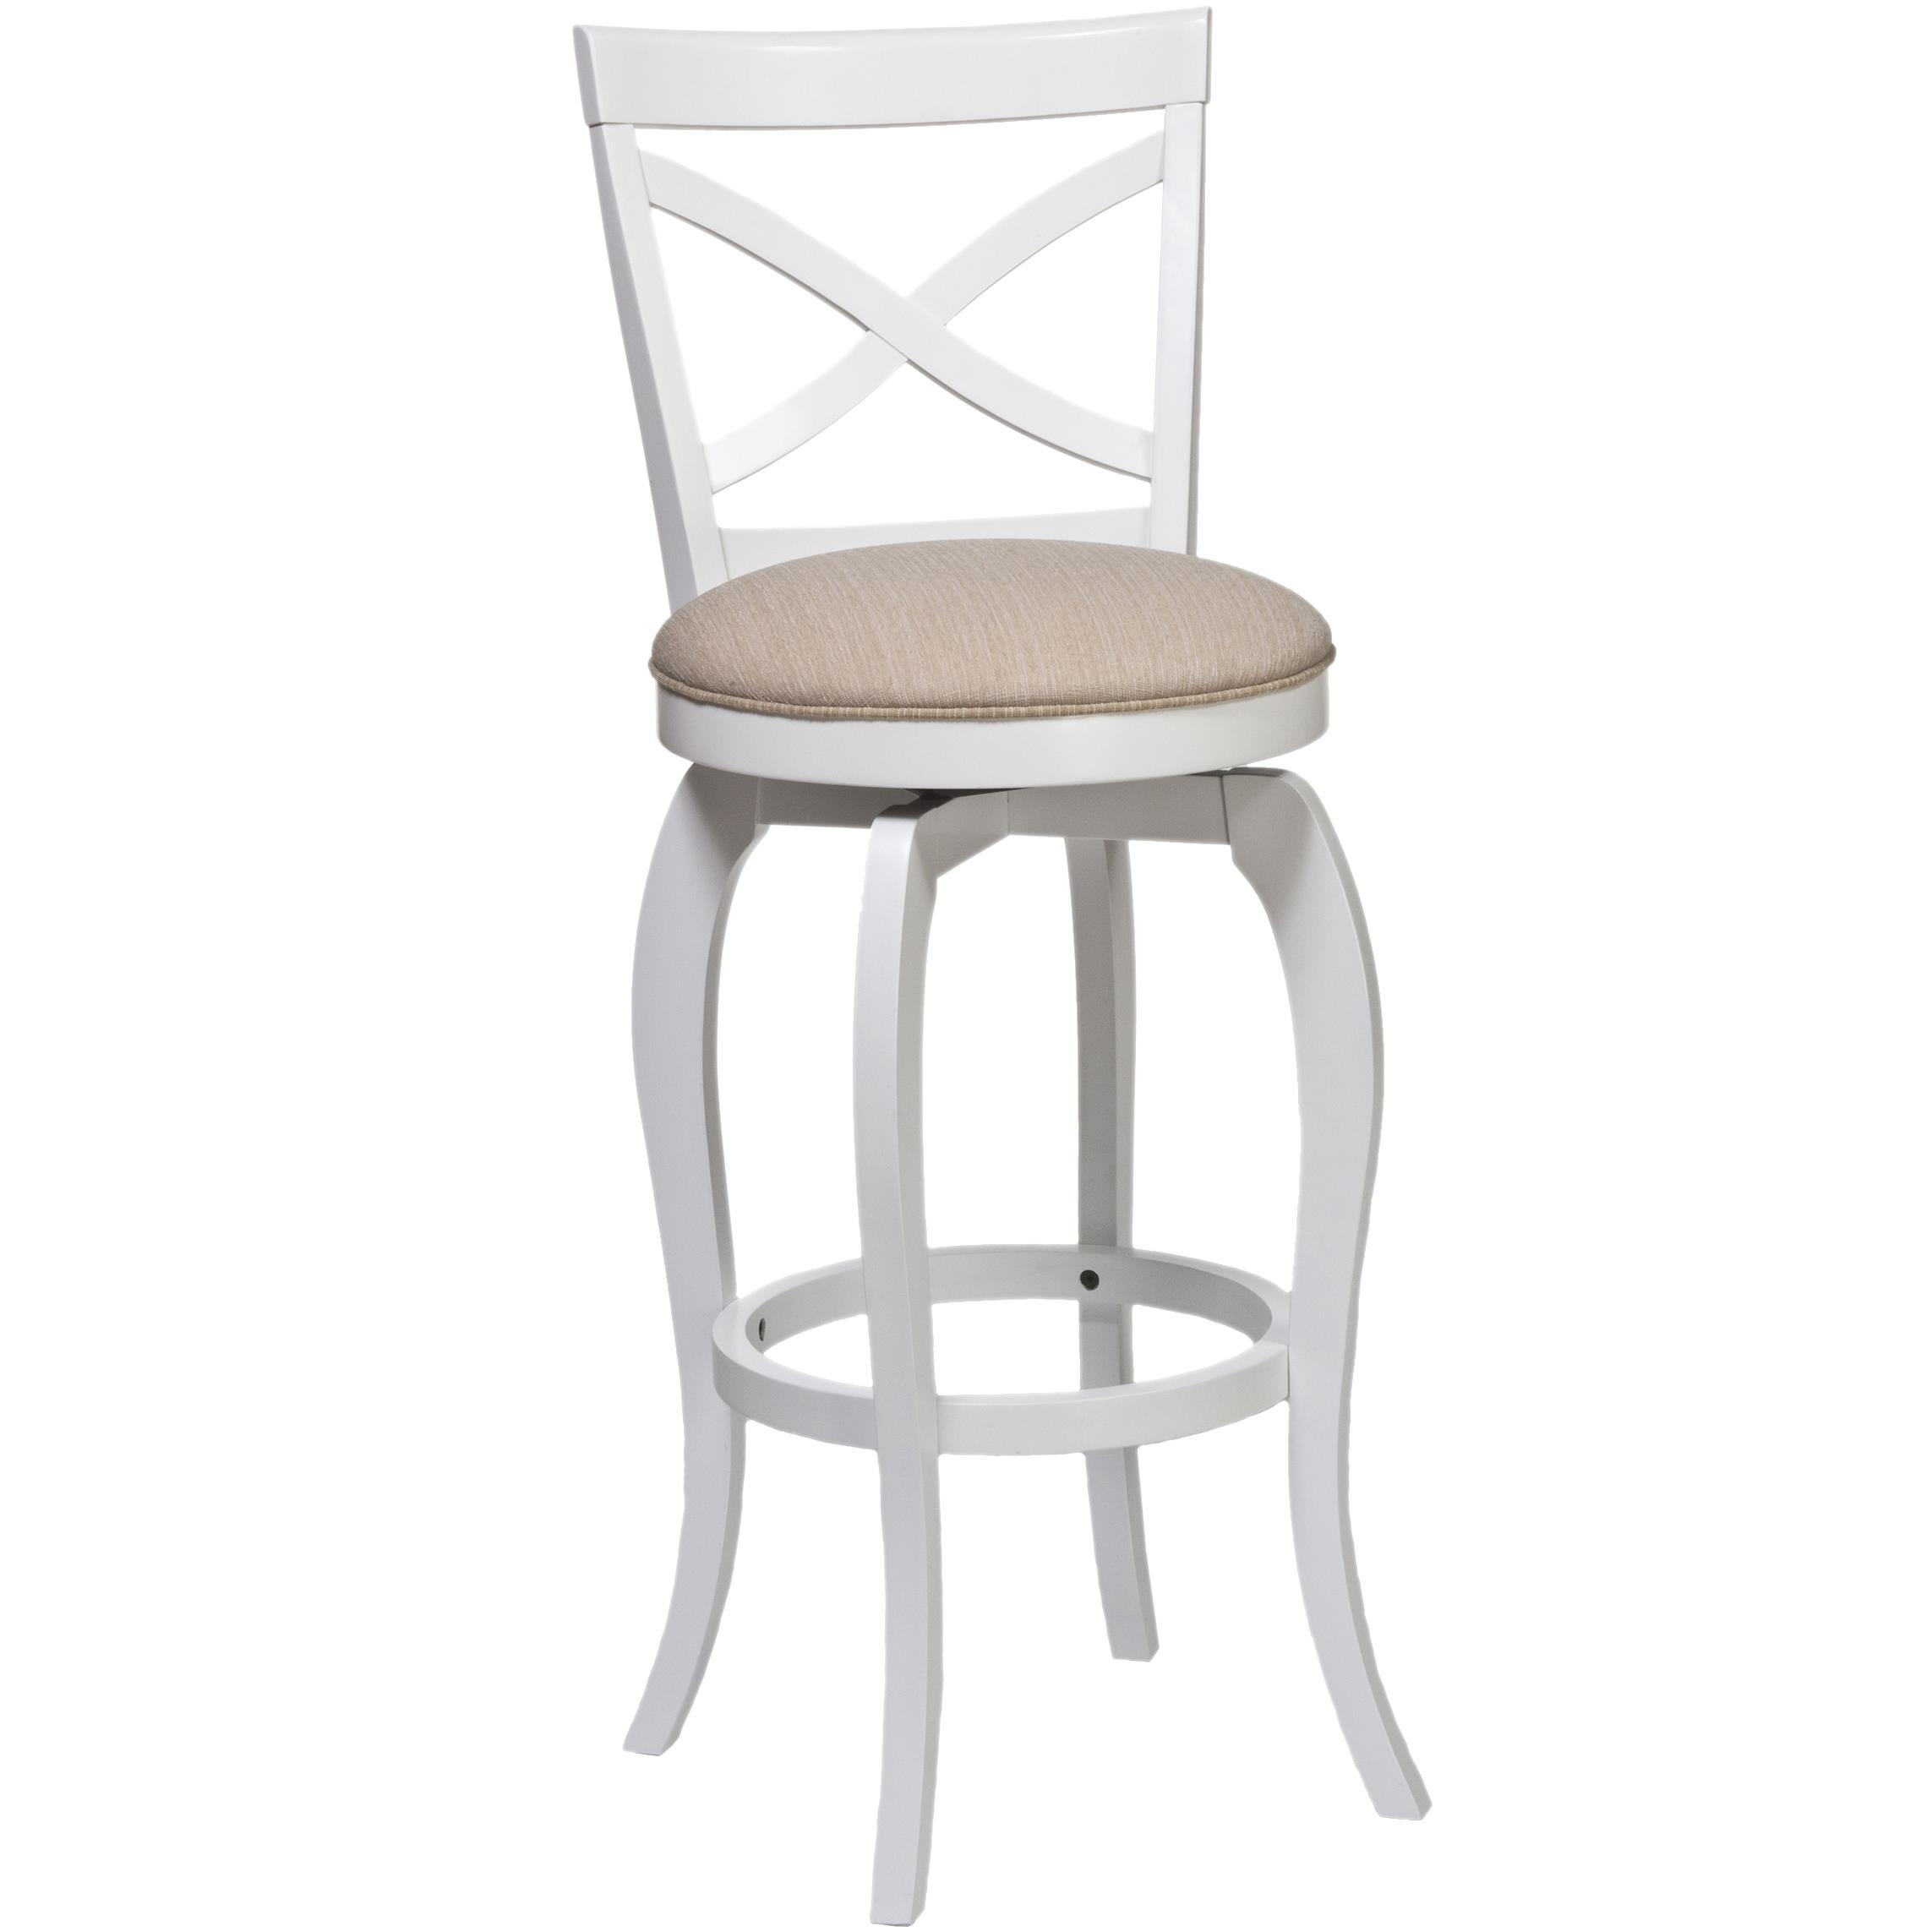 "Wood Stools 31"" Ellendale Bar Stool by Hillsdale at VanDrie Home Furnishings"